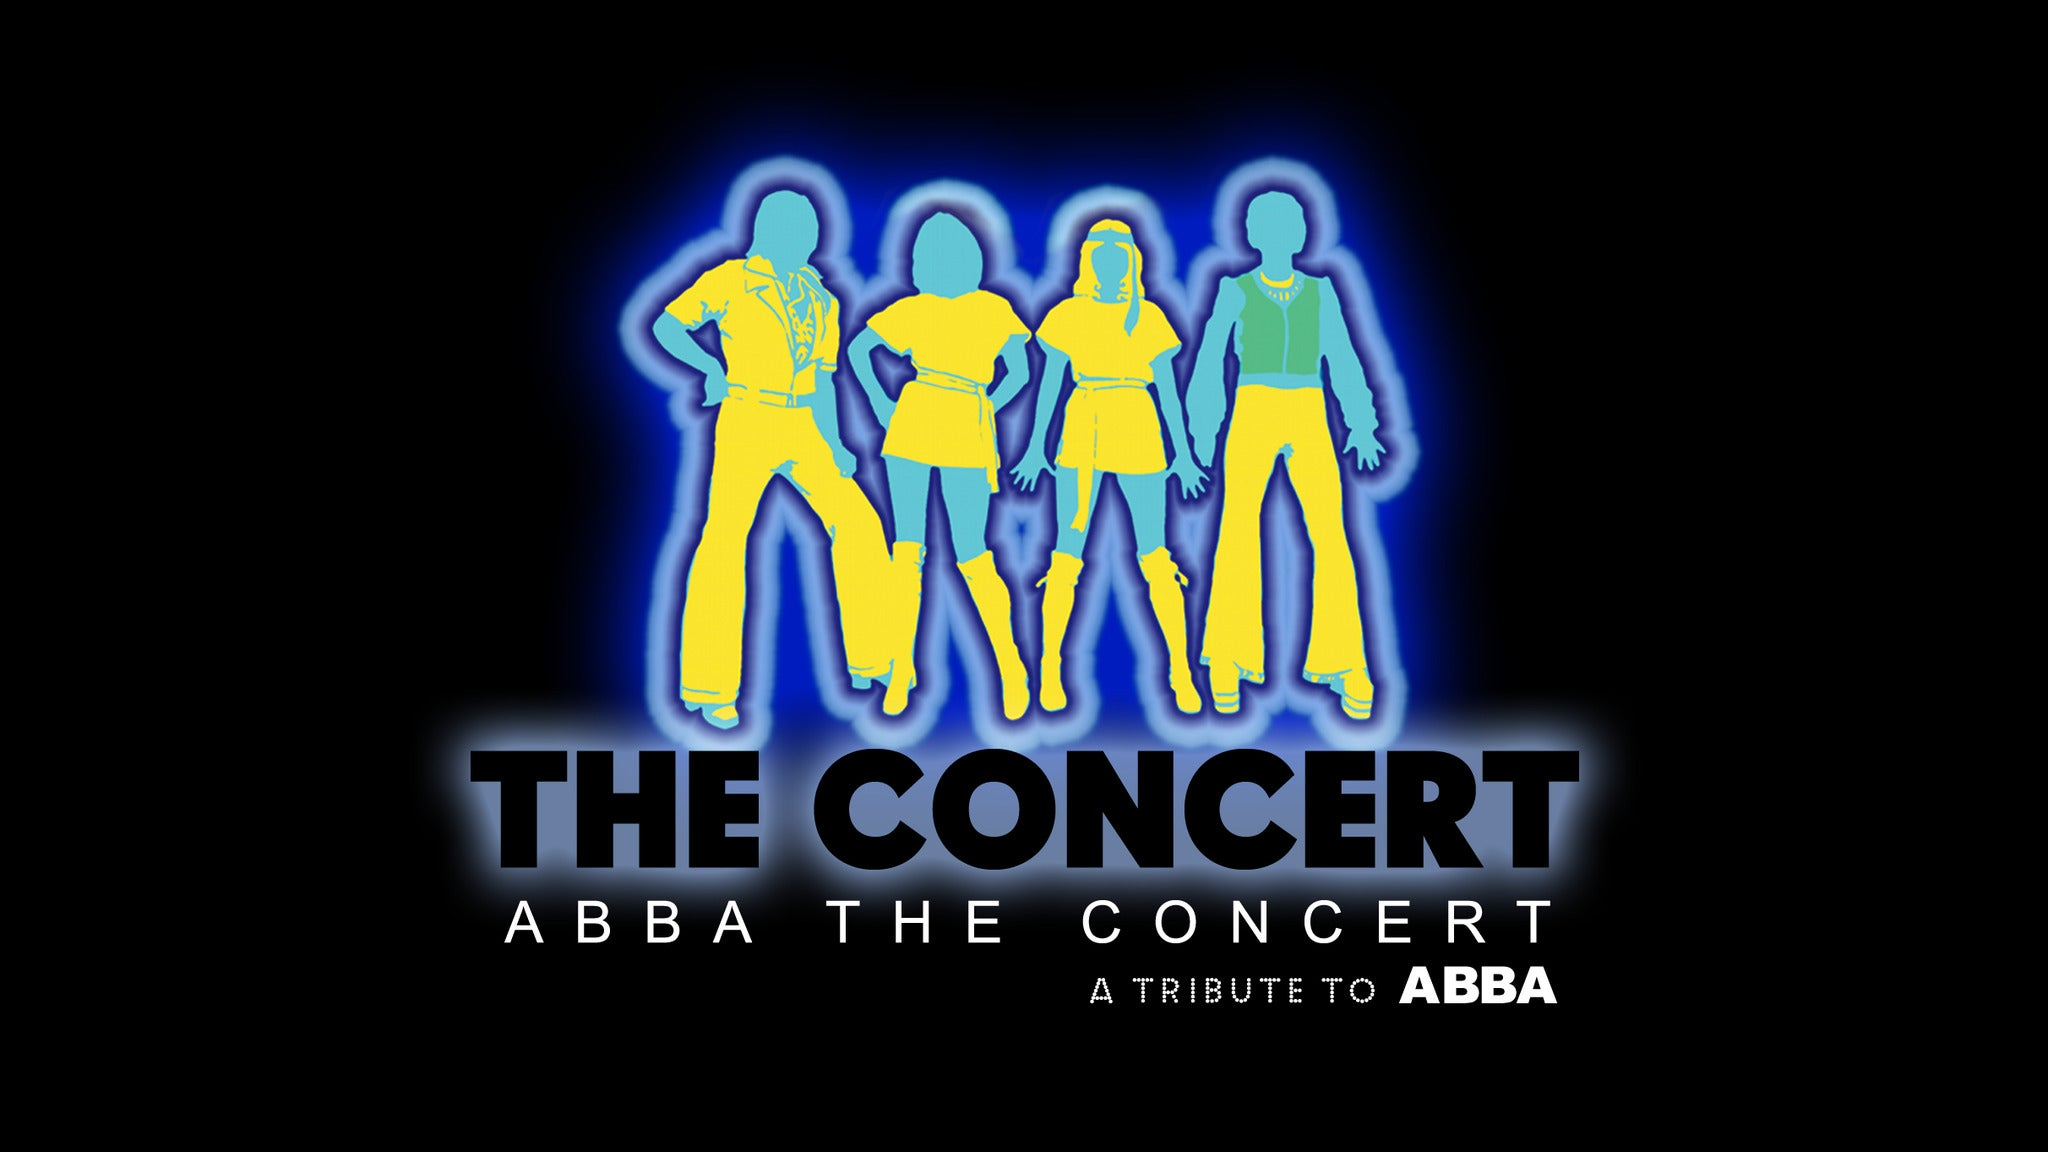 ABBA: The Concert at Filene Center